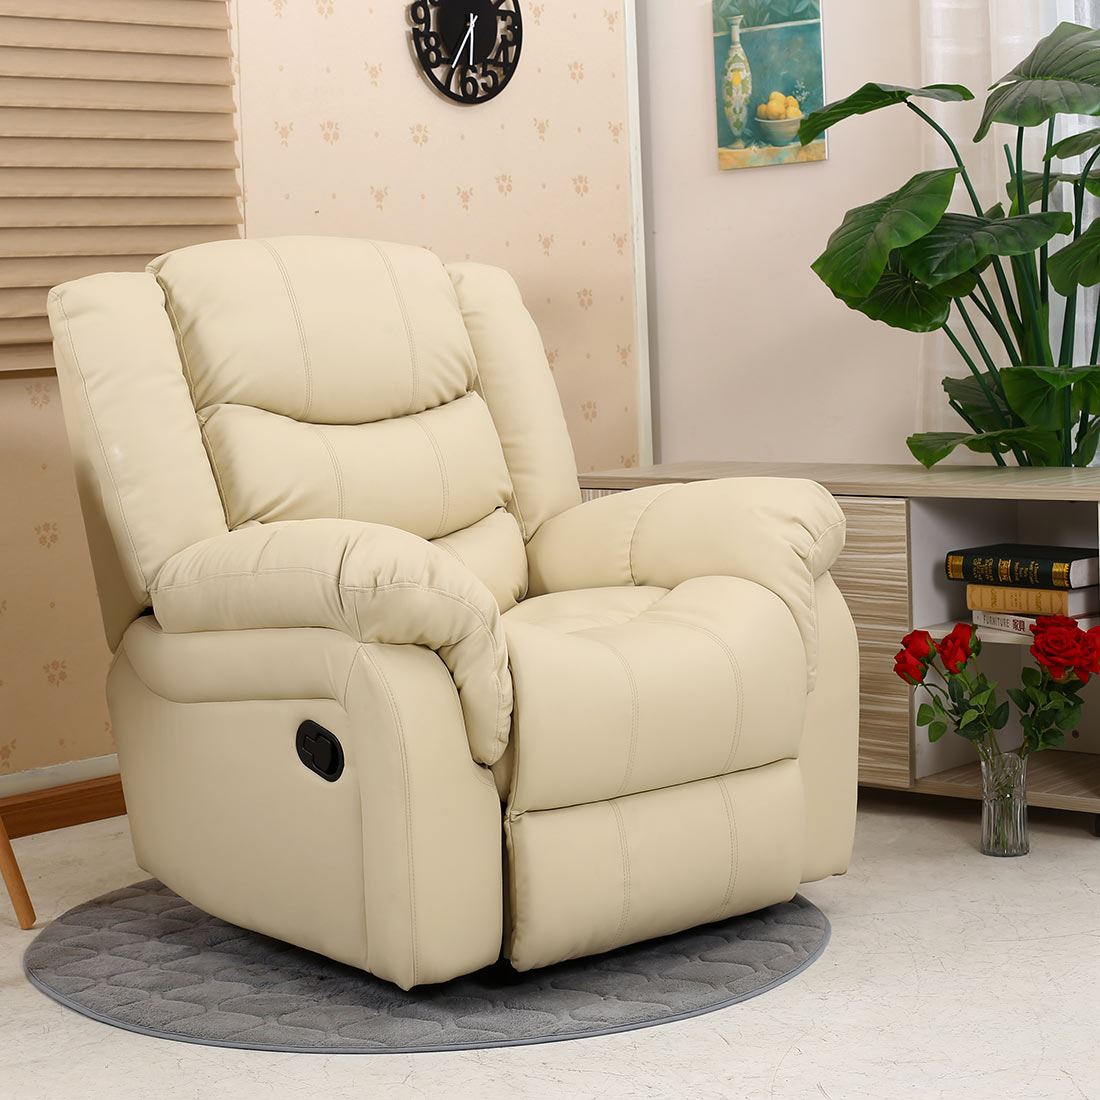 Seattle Leather Recliner Armchair Sofa Home Lounge Chair In Gaming Sofa Chairs (View 6 of 15)